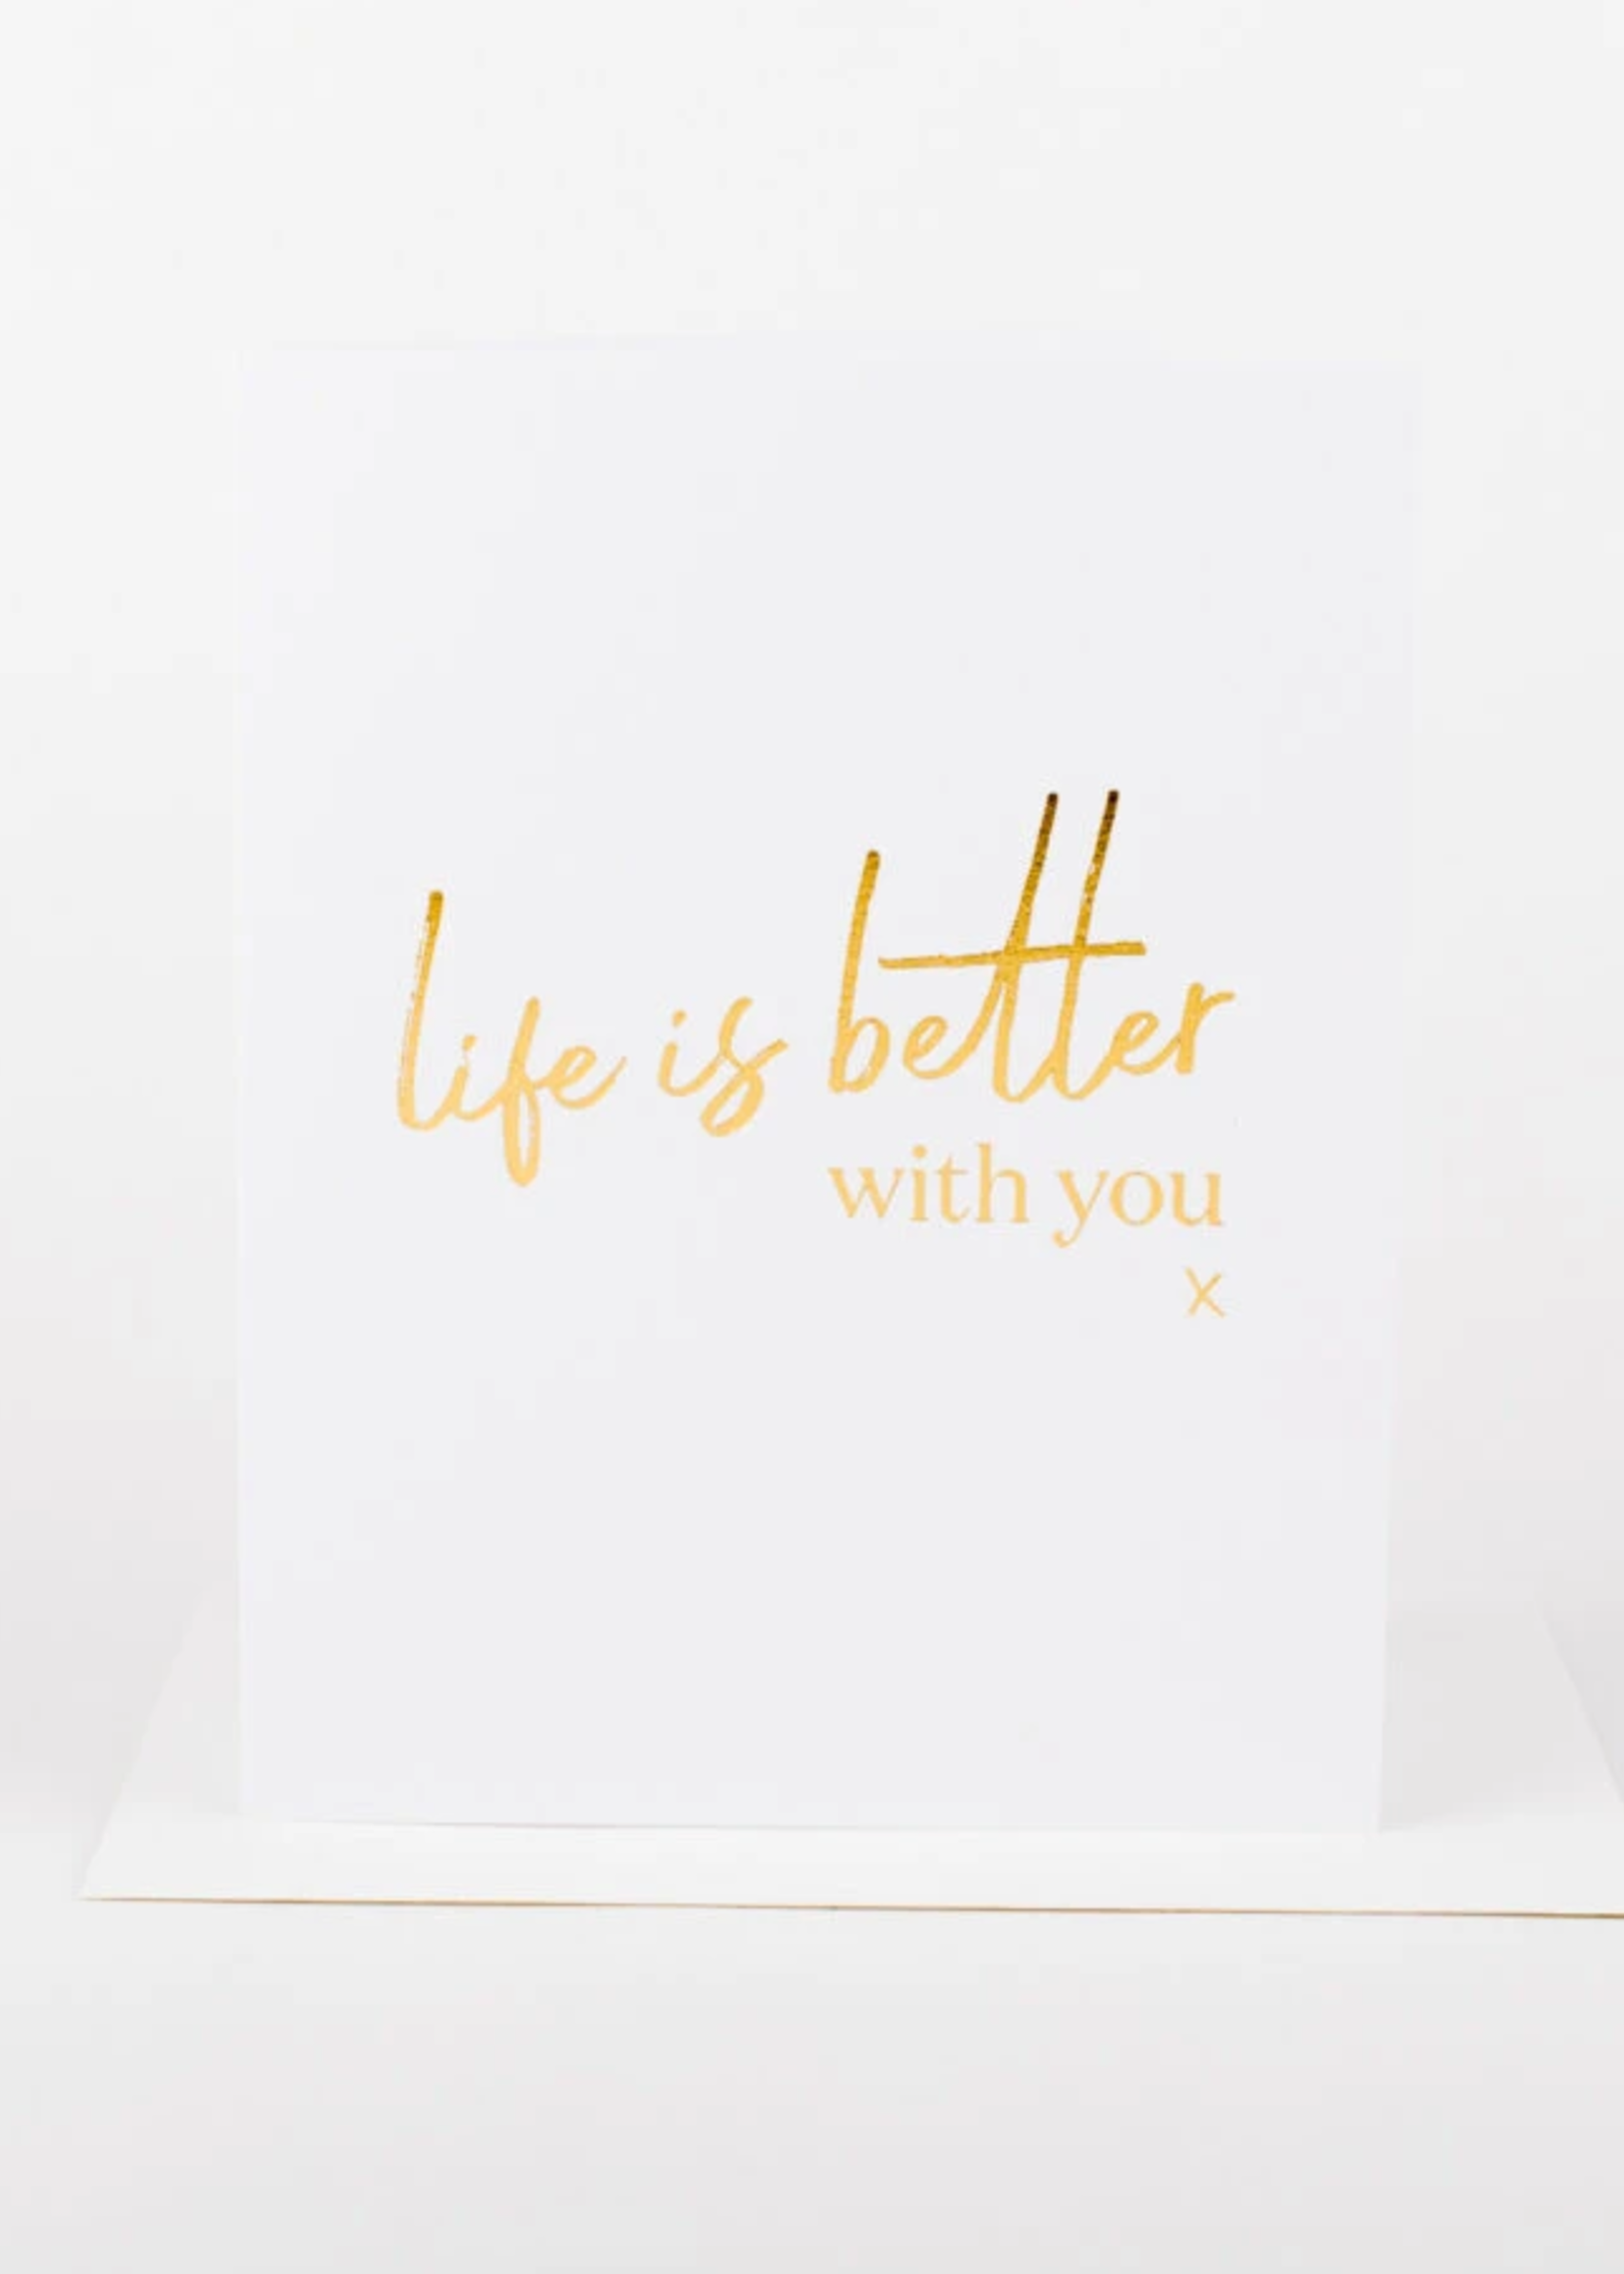 Wrinkle and Crease life is better with you card